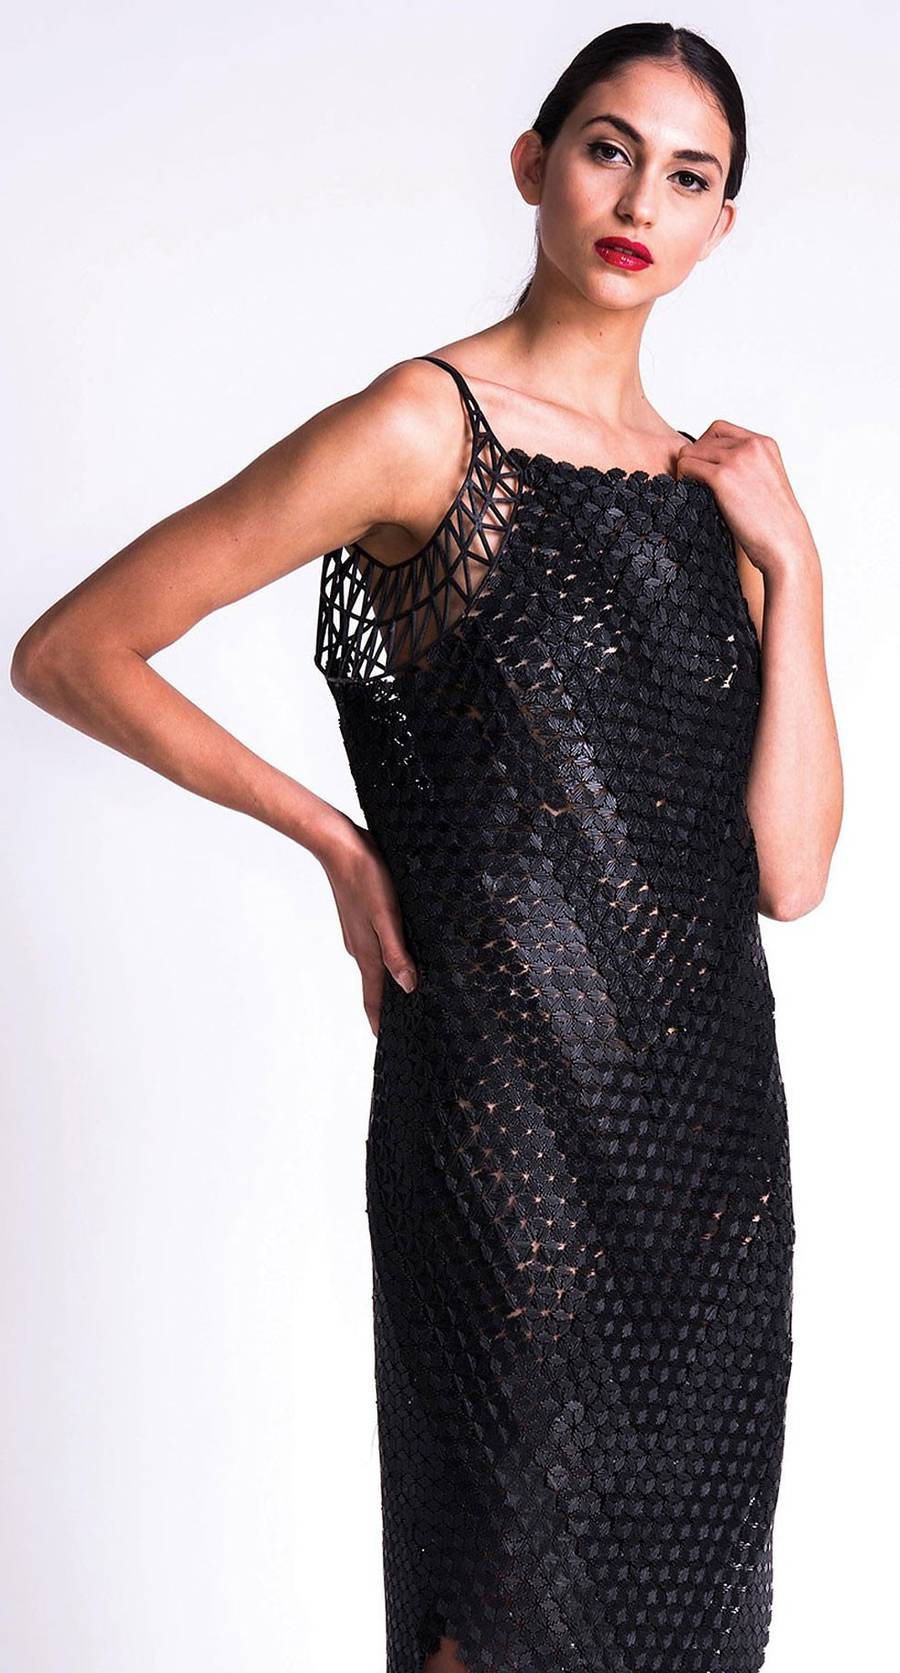 3D-Printed Clothes at Home